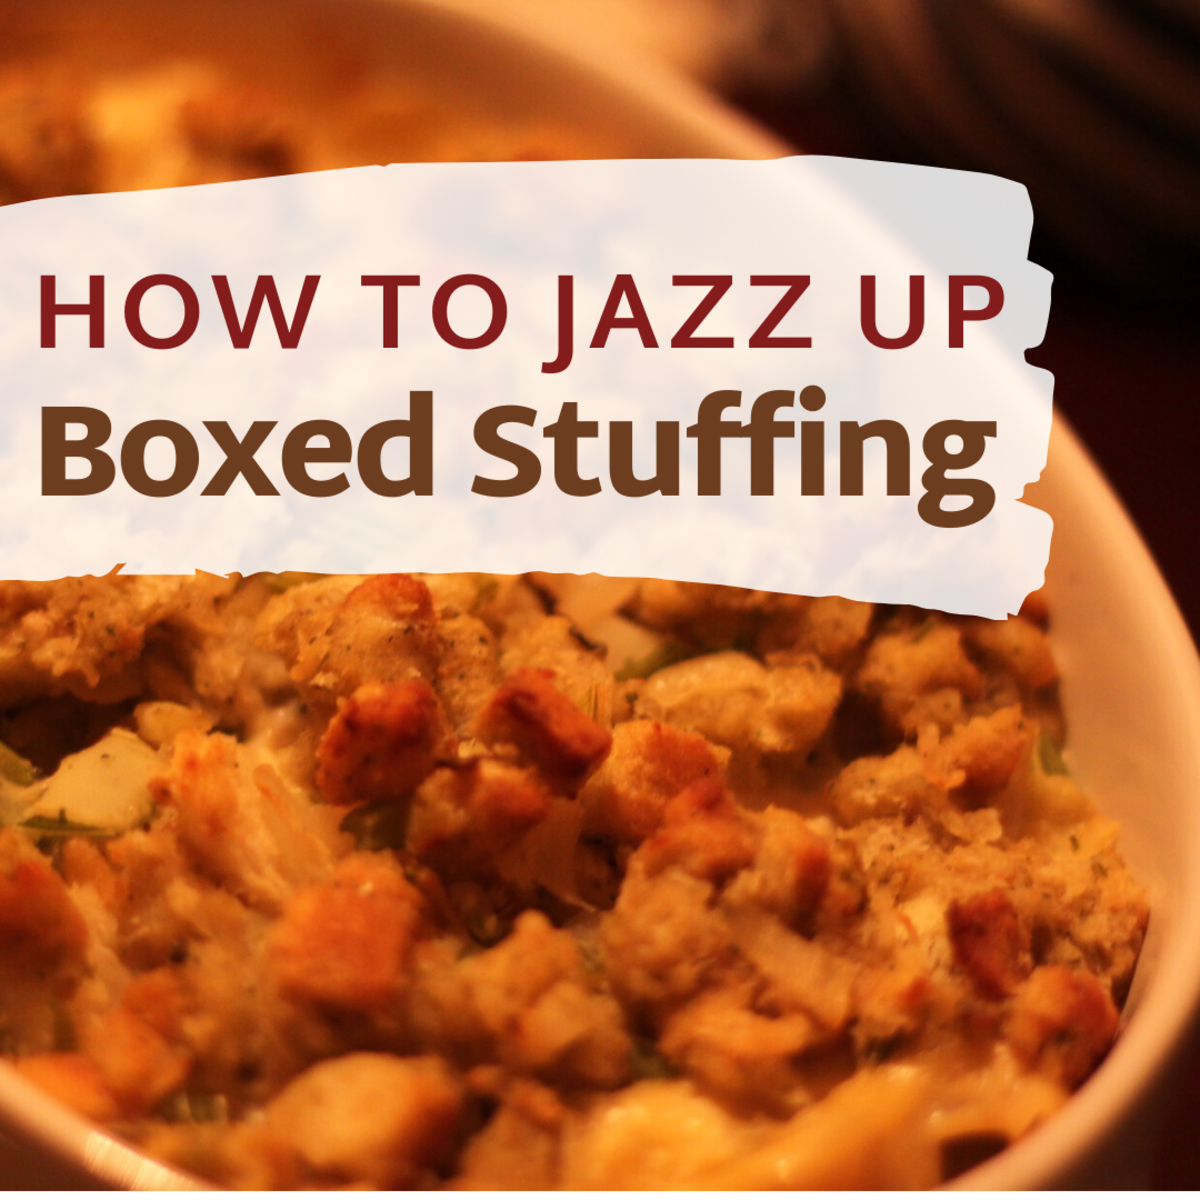 Tips for Jazzing Up Boxed Stuffing